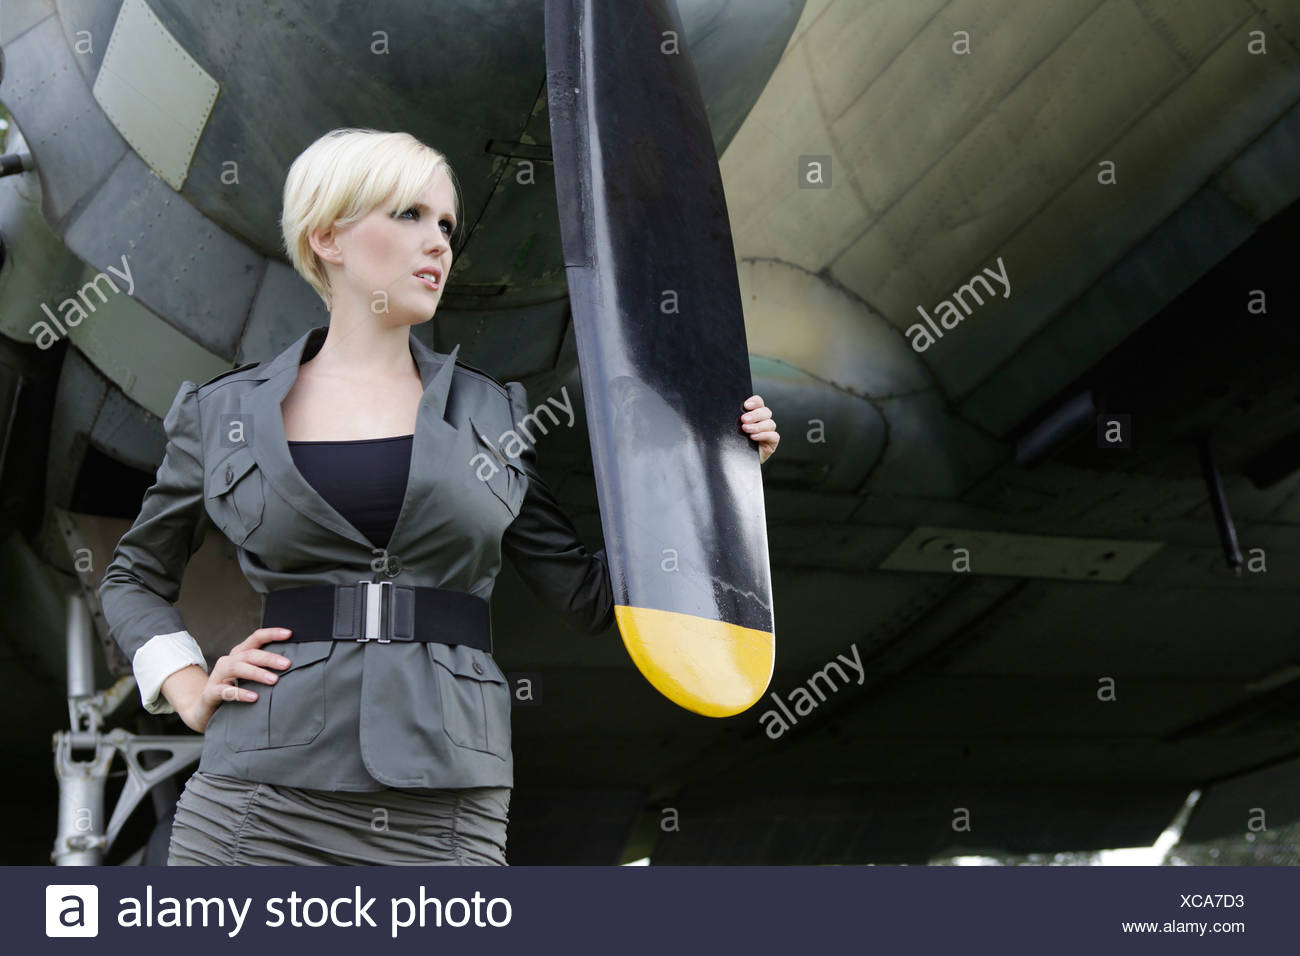 Young woman standing at propeller plane - Stock Image